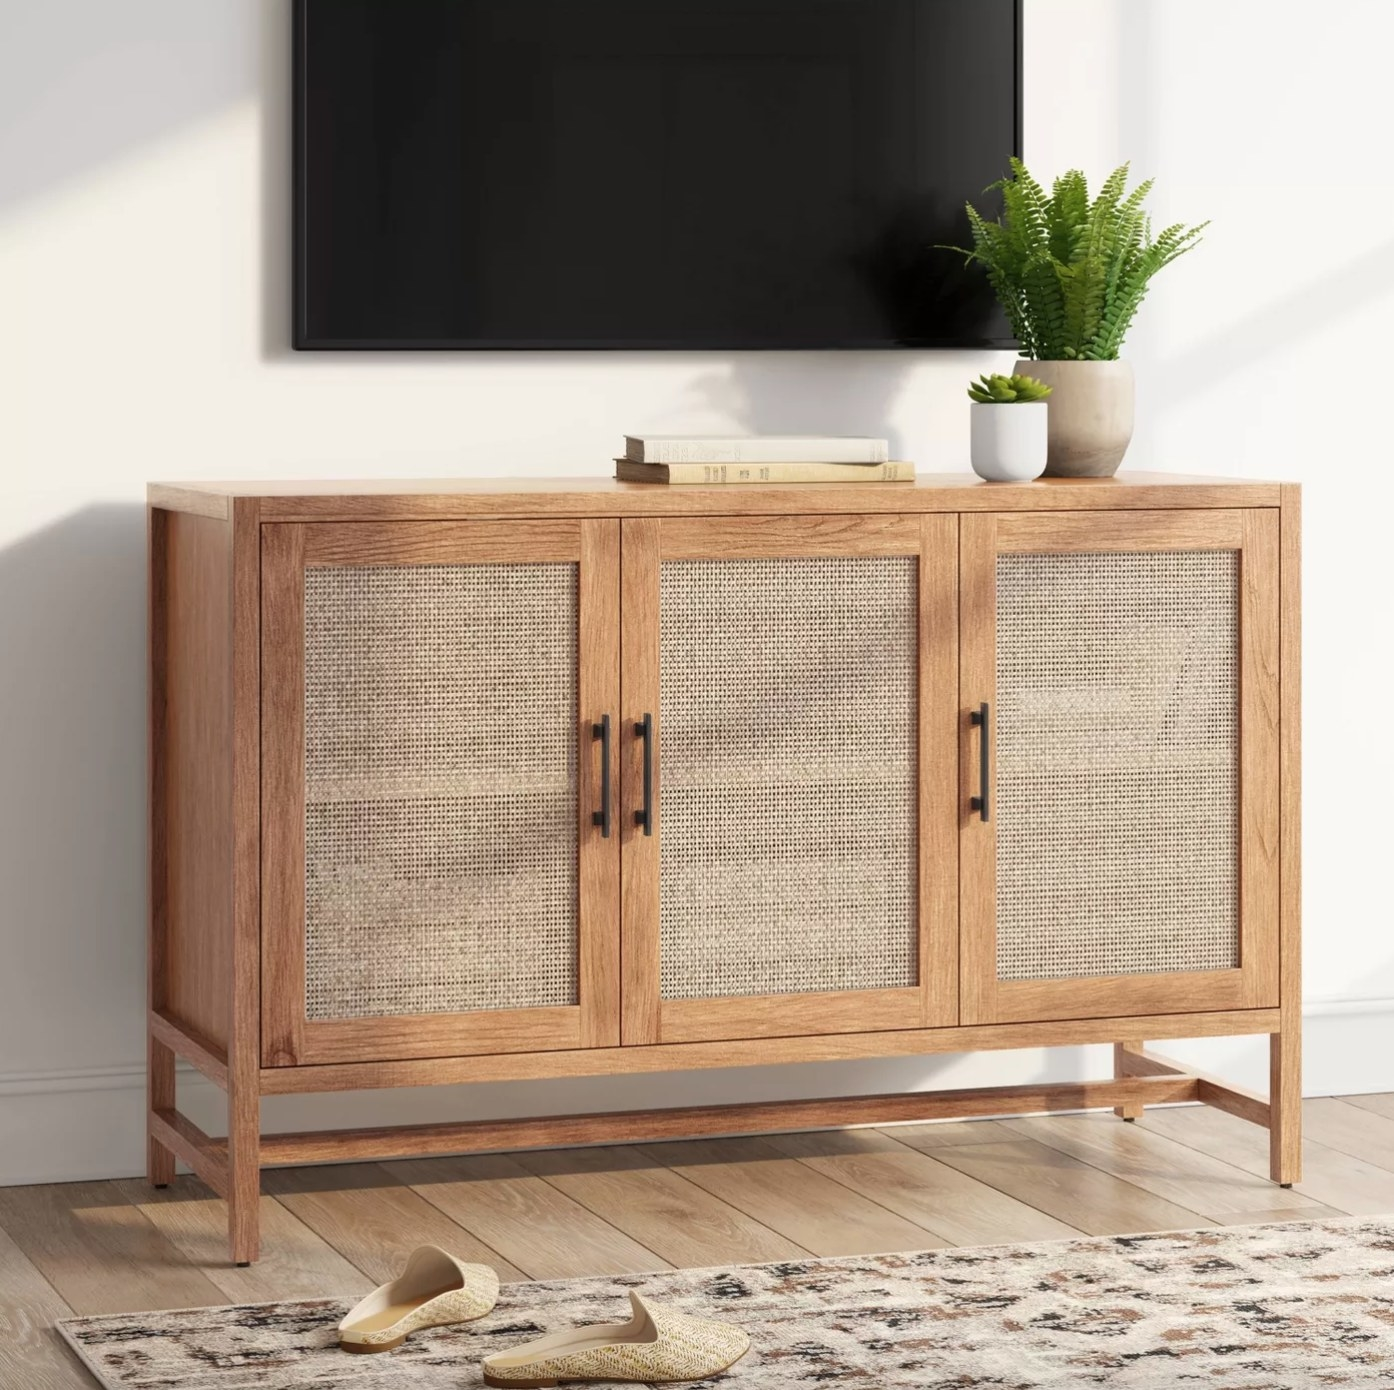 The three-door accent TV stand in natural holding books and plants